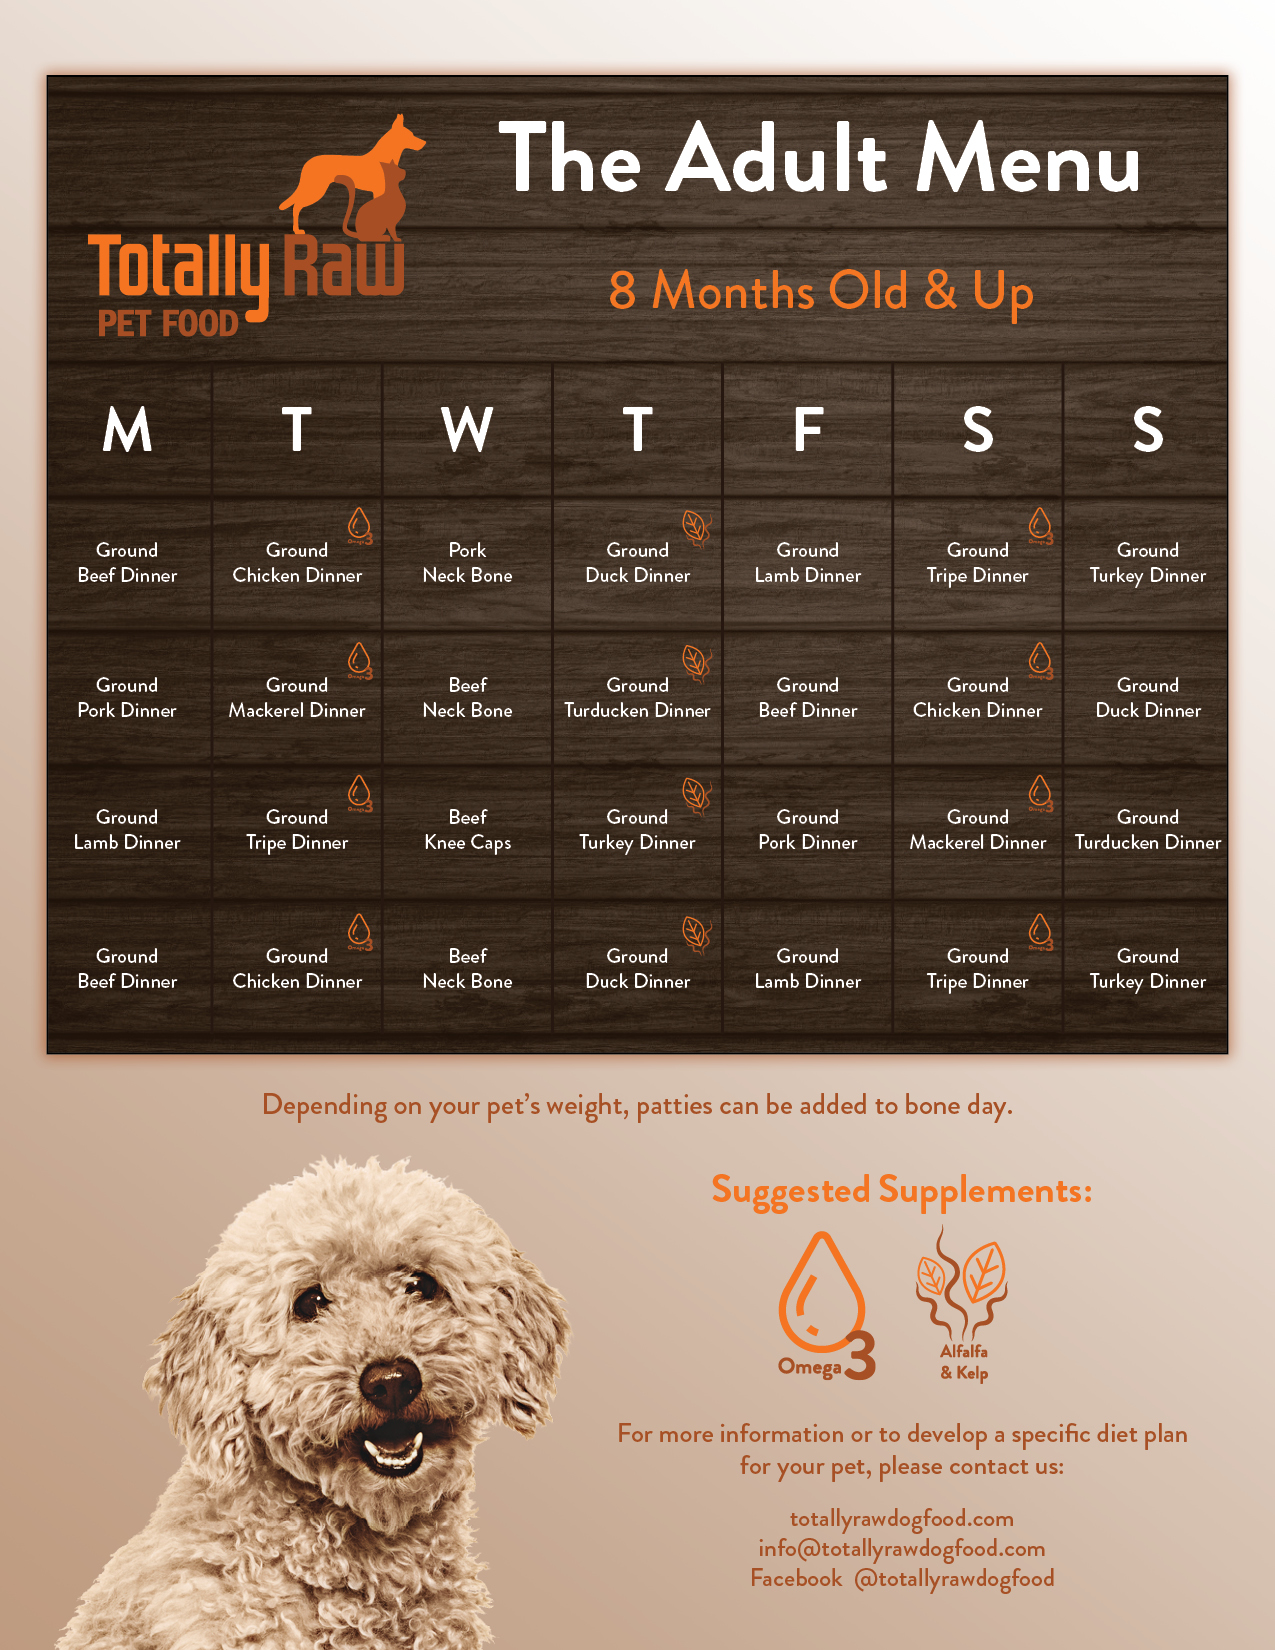 Sample Menu for Adult Dogs